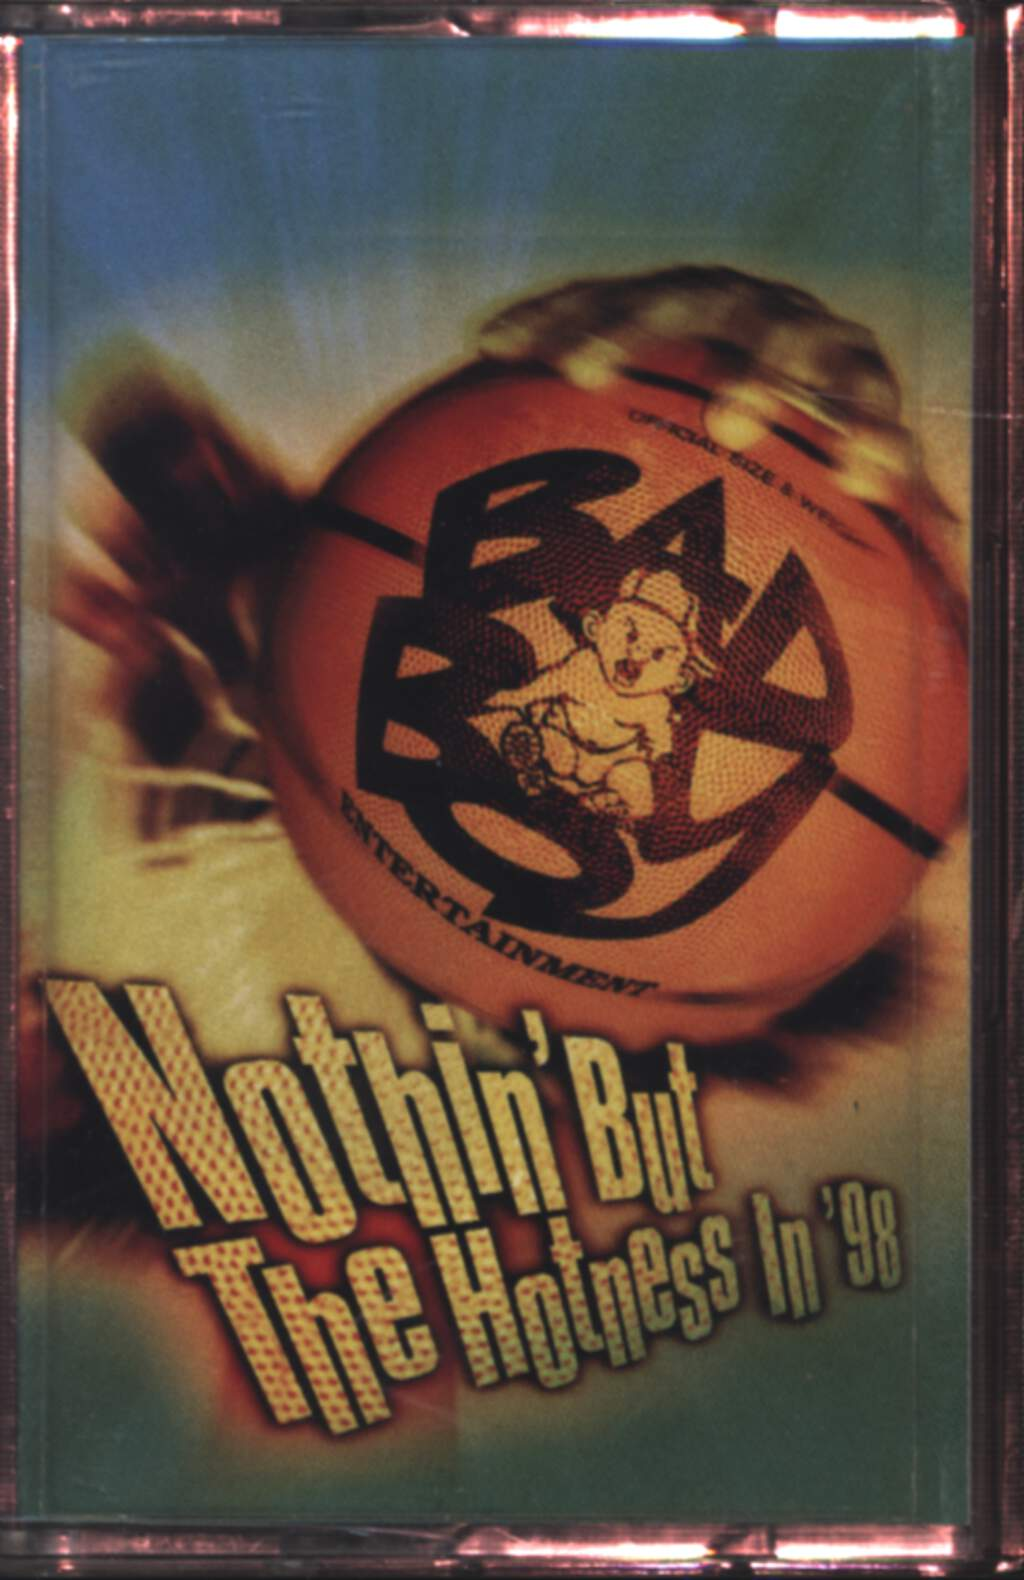 Various: Nothin' But The Hotness In '98, Compact Cassette